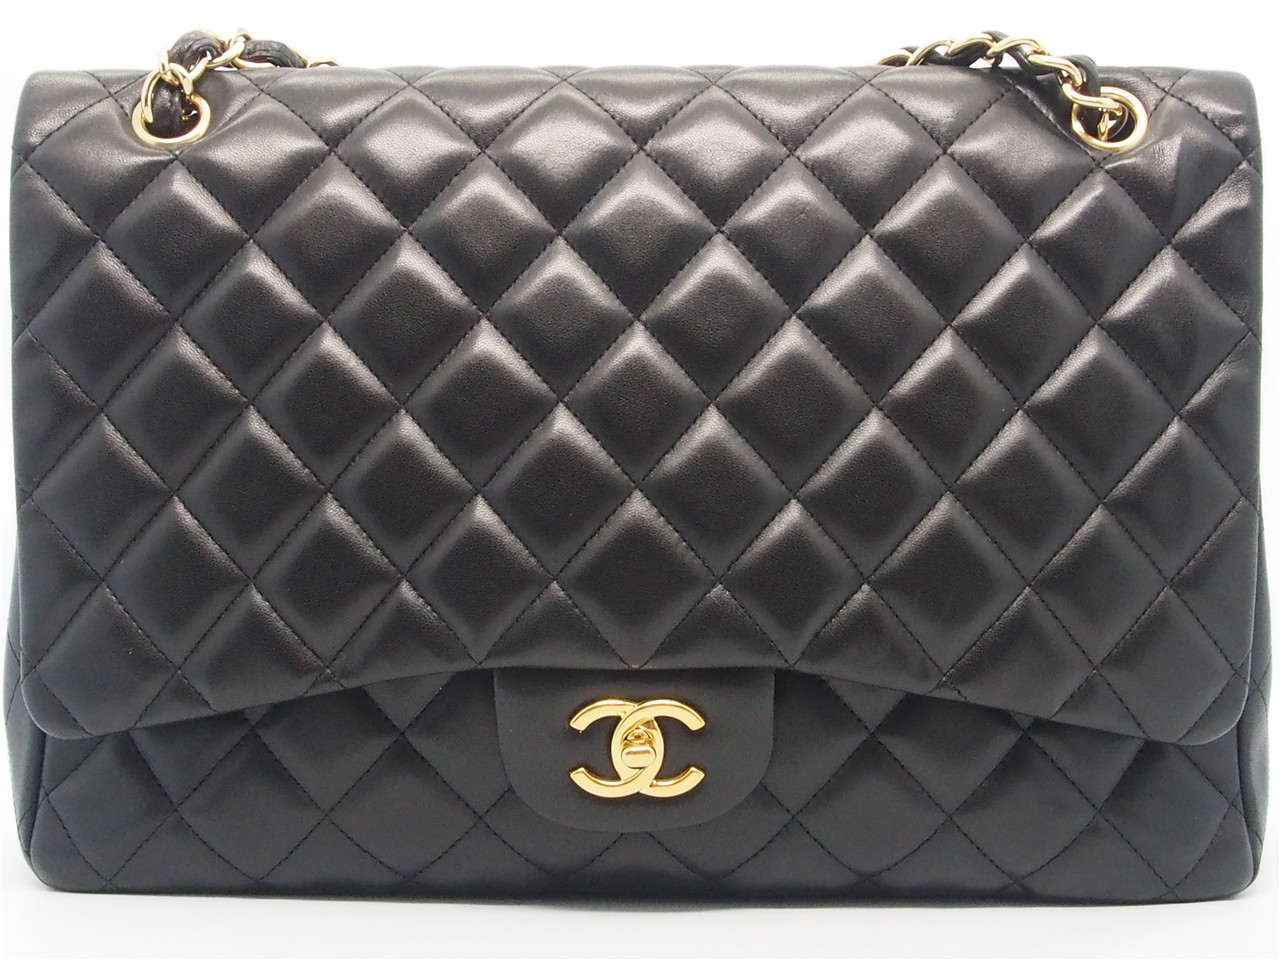 ddb4050a46c58 Authentic CHANEL Black Quilted Lambskin Leather Classic Maxi Single Flap Bag